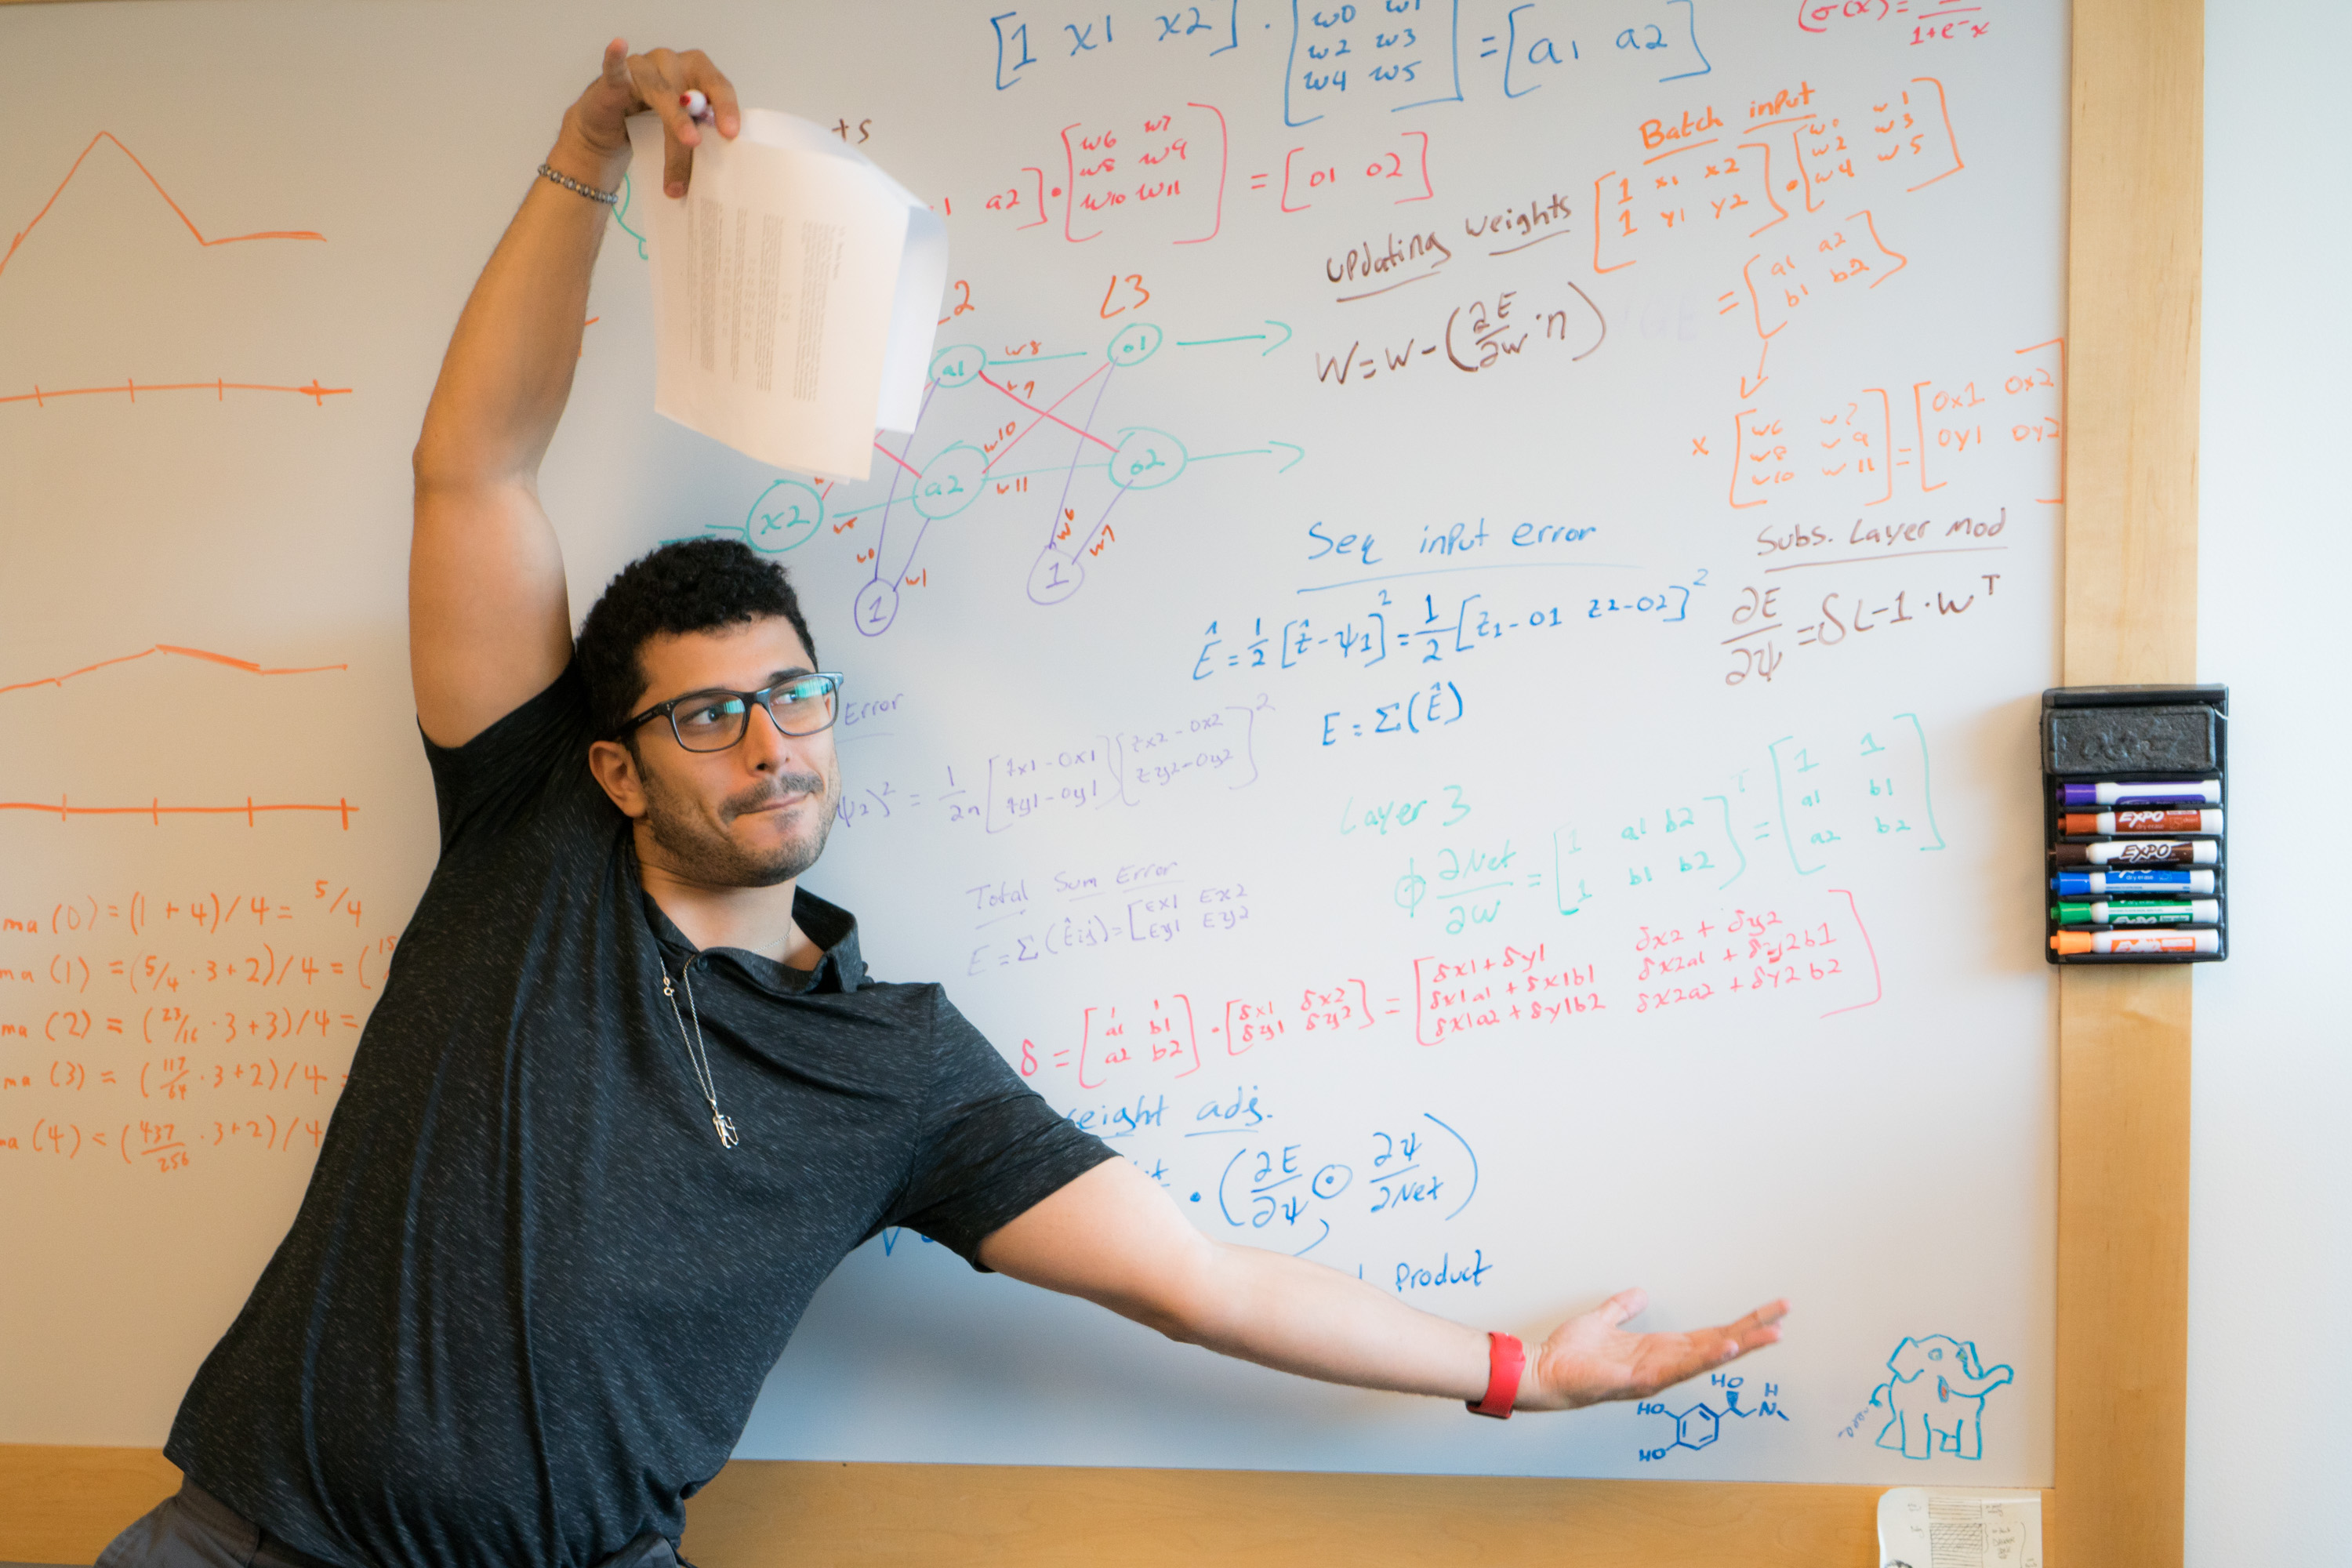 Innovation Lab Lead Abdul Dremali reflects on his time at MIT's Sloan School of Management Executive Education Courses